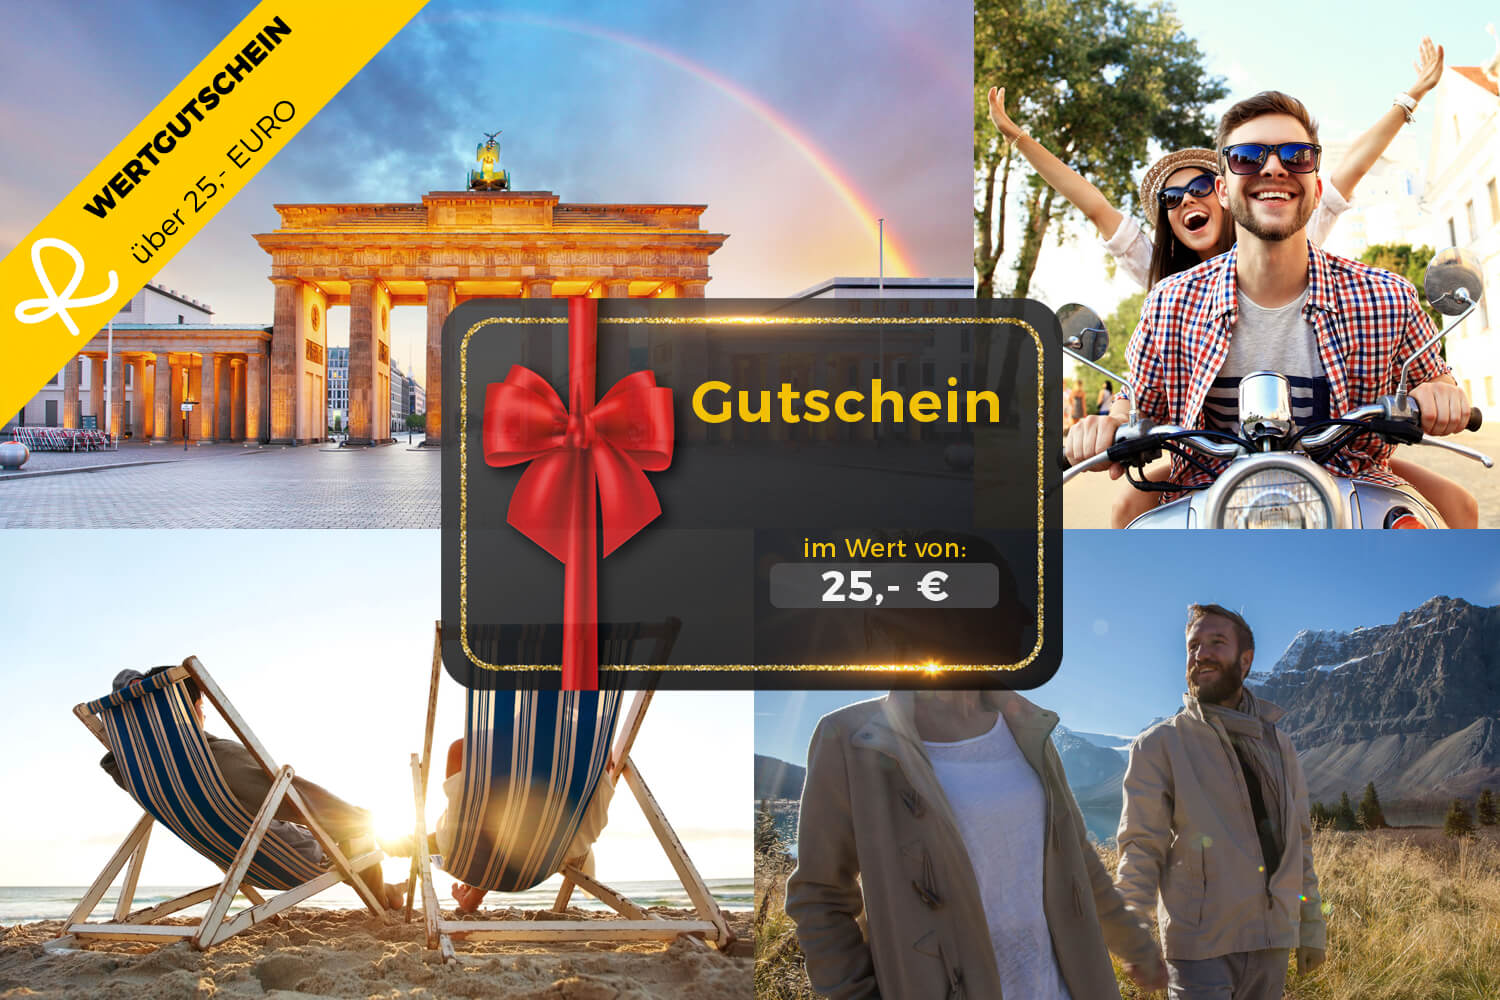 25, - € voucher for the Travelticket online store - ideal gift